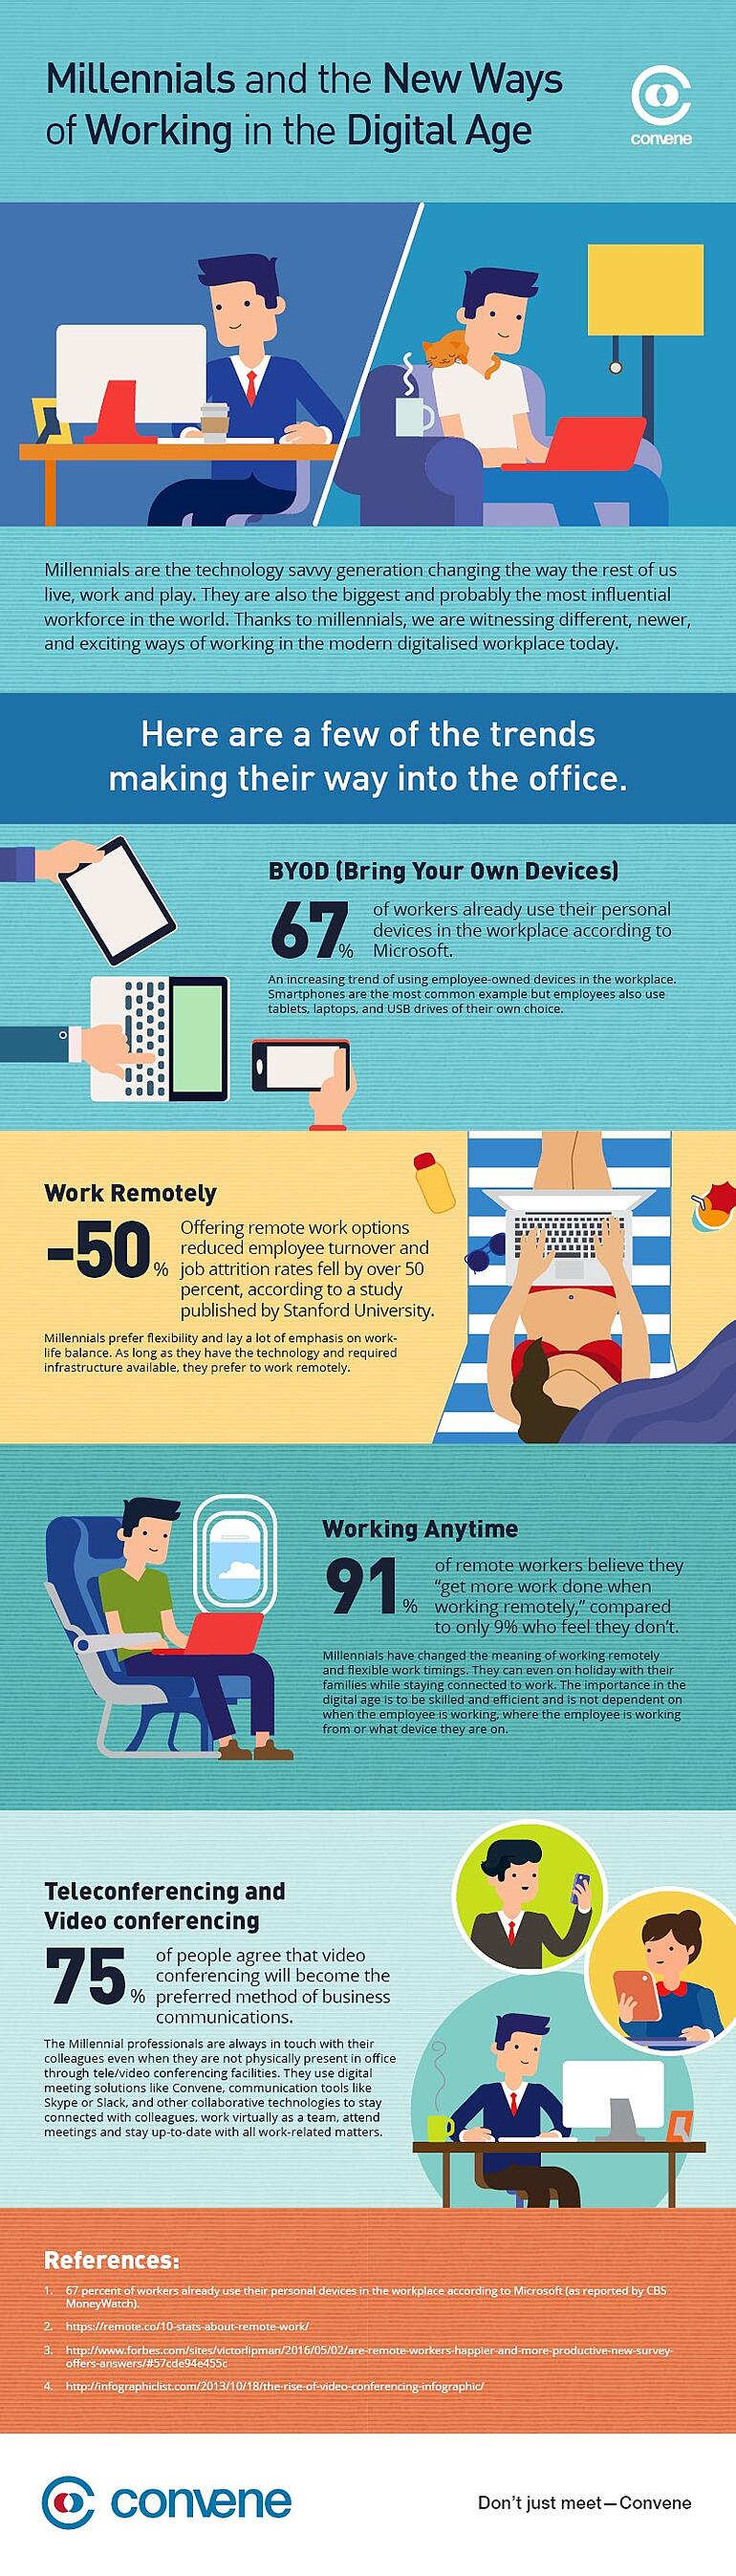 Millennials and new ways of working, byod, flexworking, remote working and video conferencing